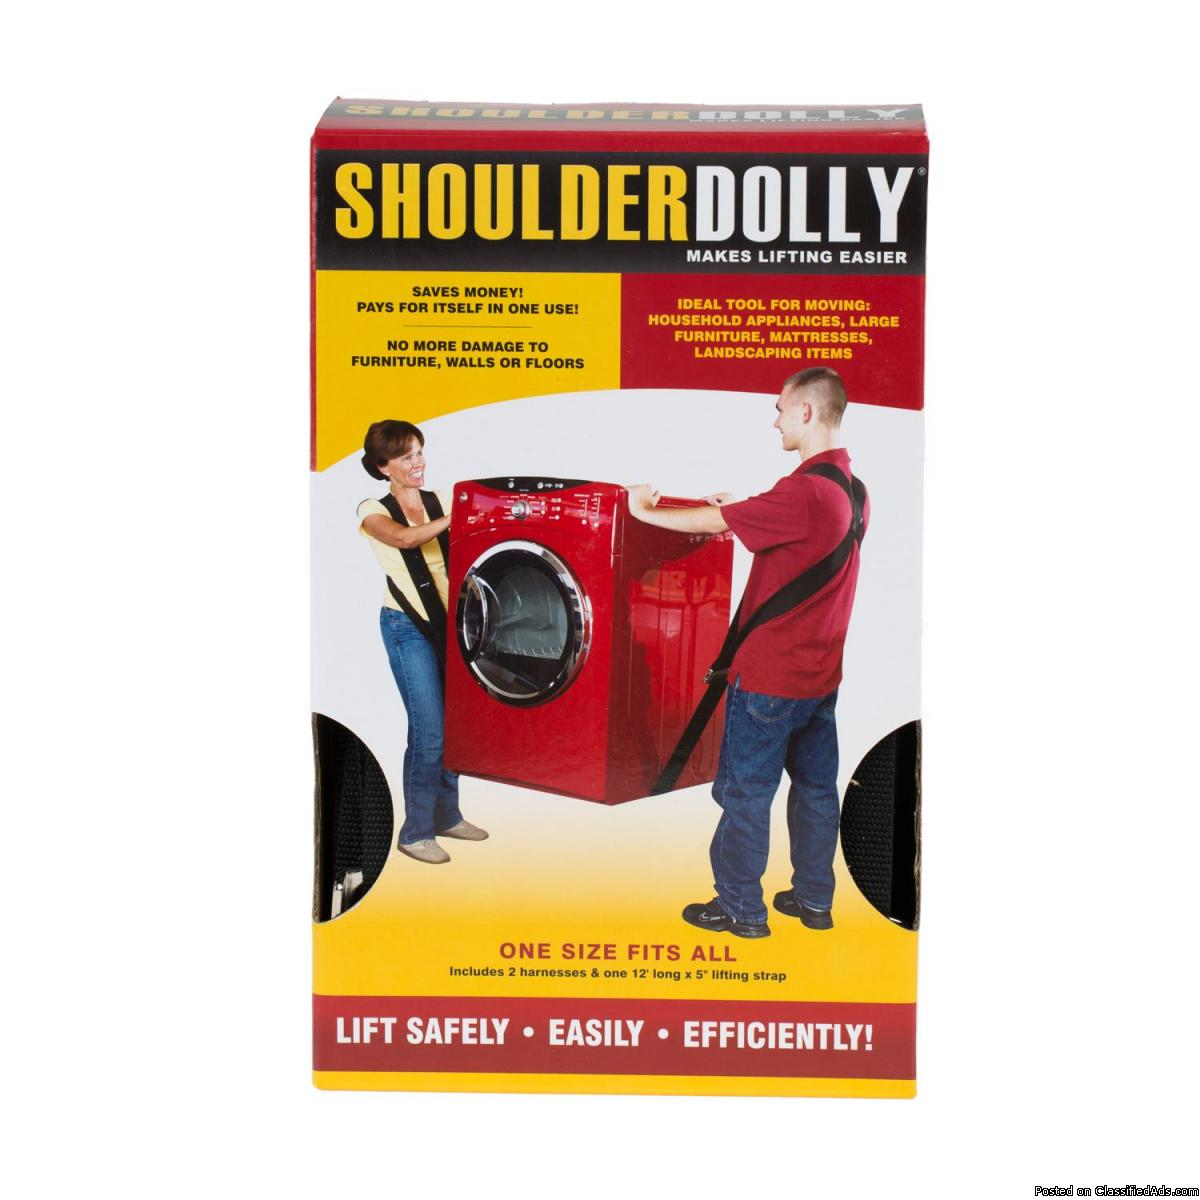 Shoulder Dolly LD-Person Harness System, Free Shipping